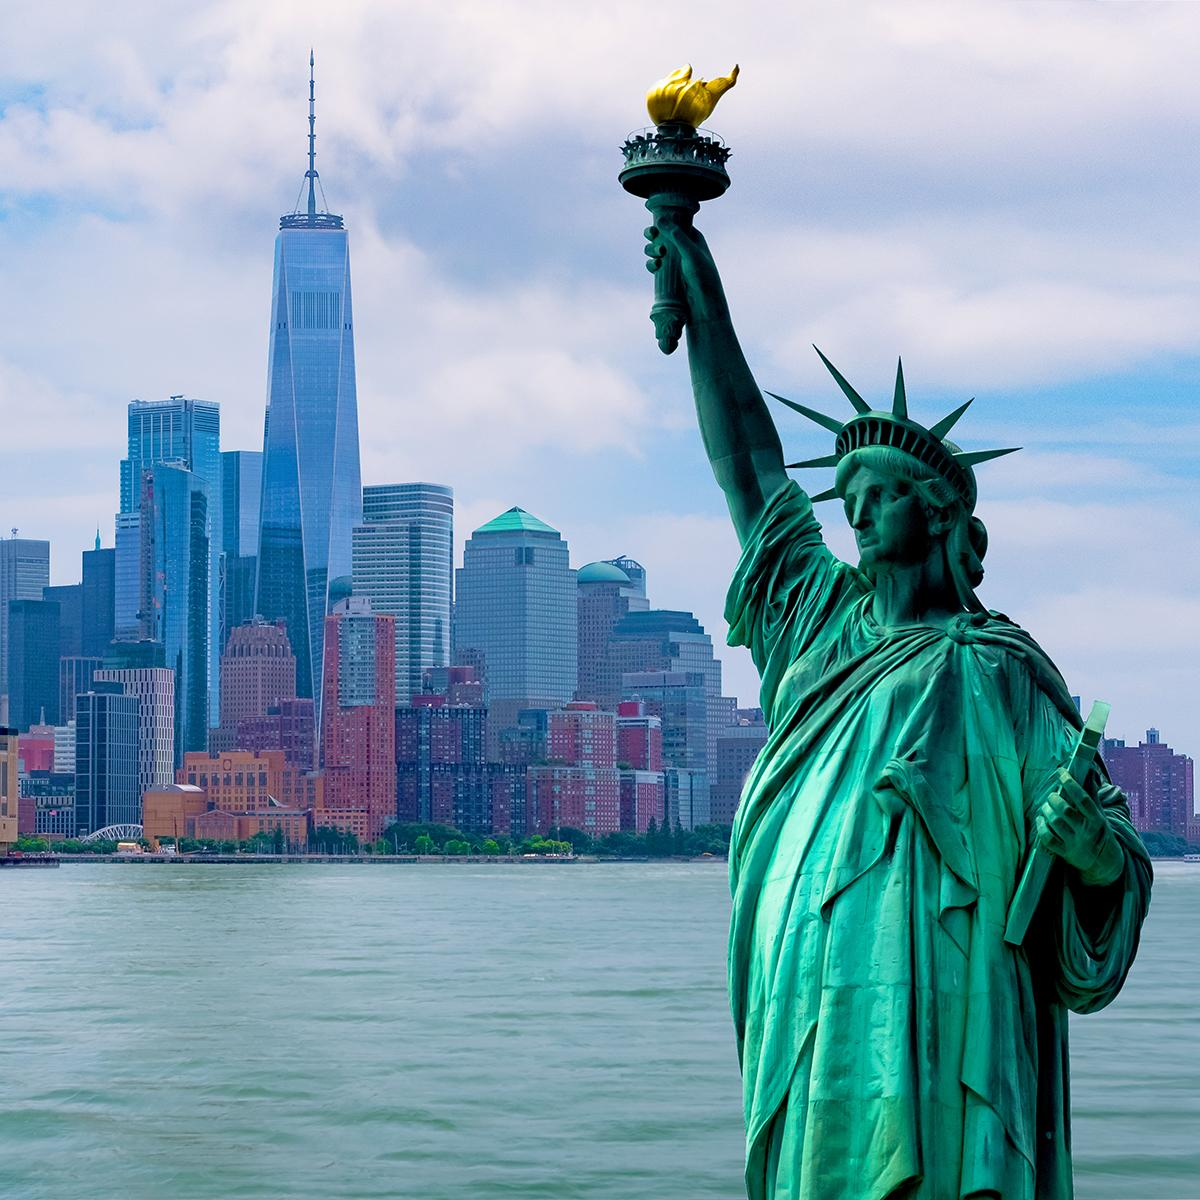 Views of the Statue of Liberty and New York City's skyline